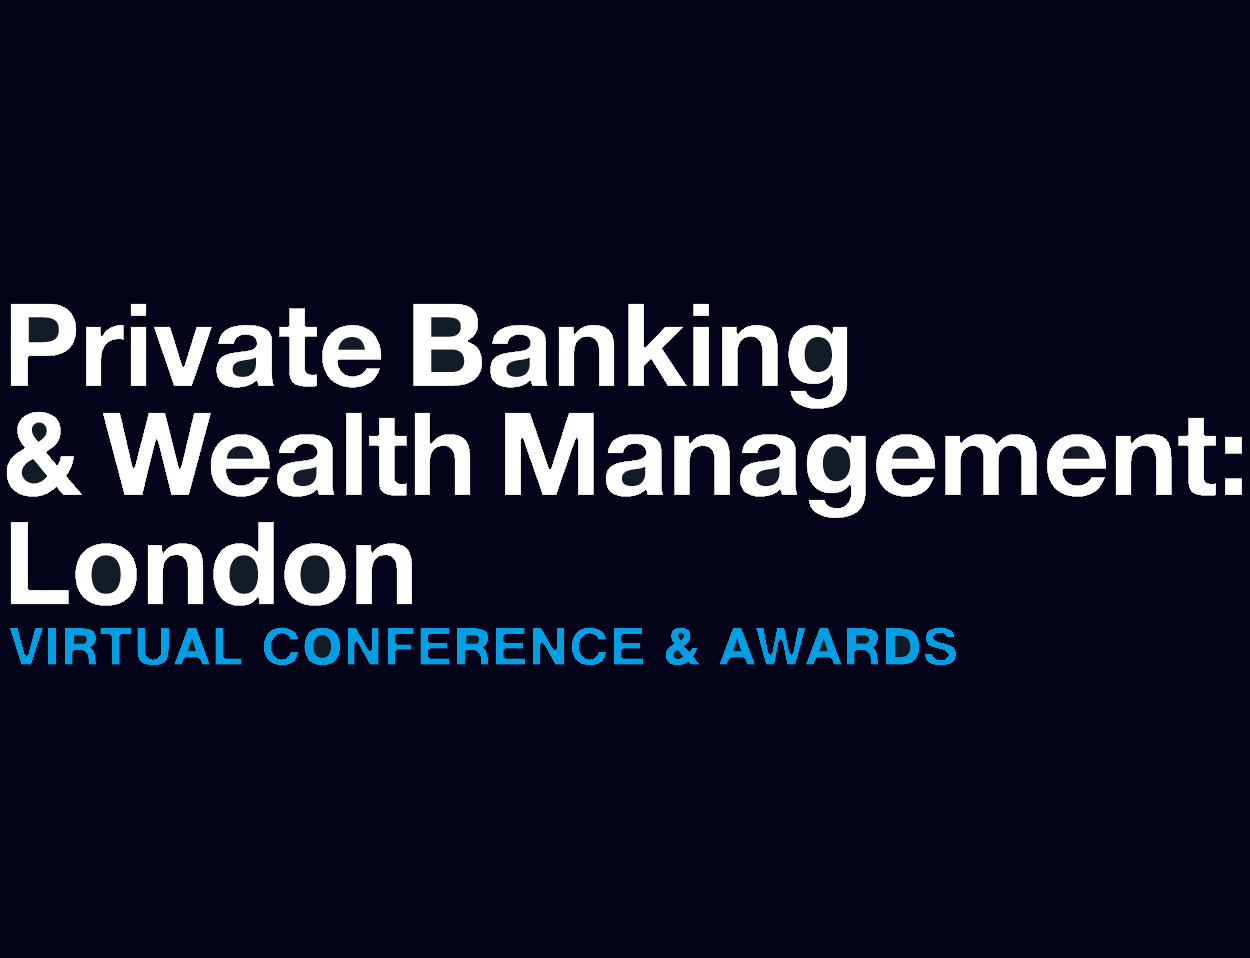 Private Banking & Wealth Management: London 2021 Conference and Awards